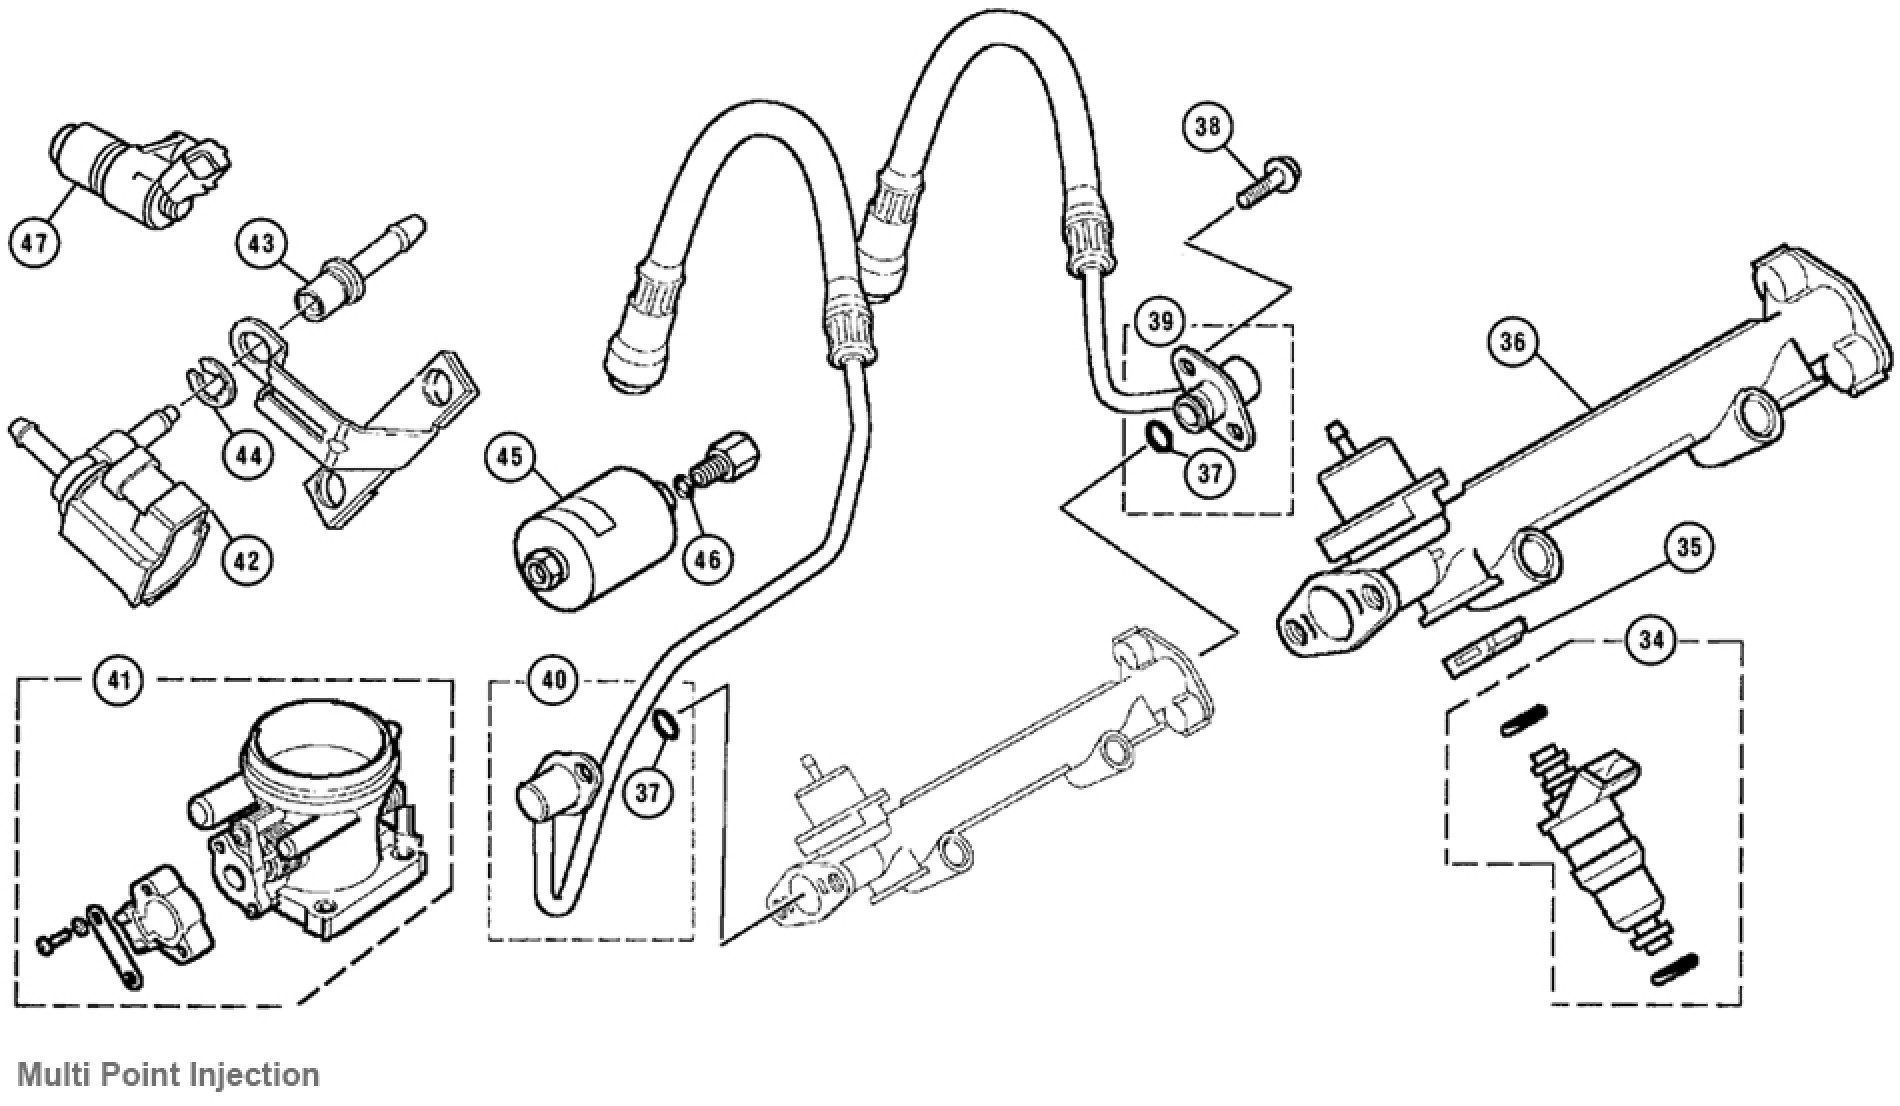 Fuel Injection Multi Point Injection